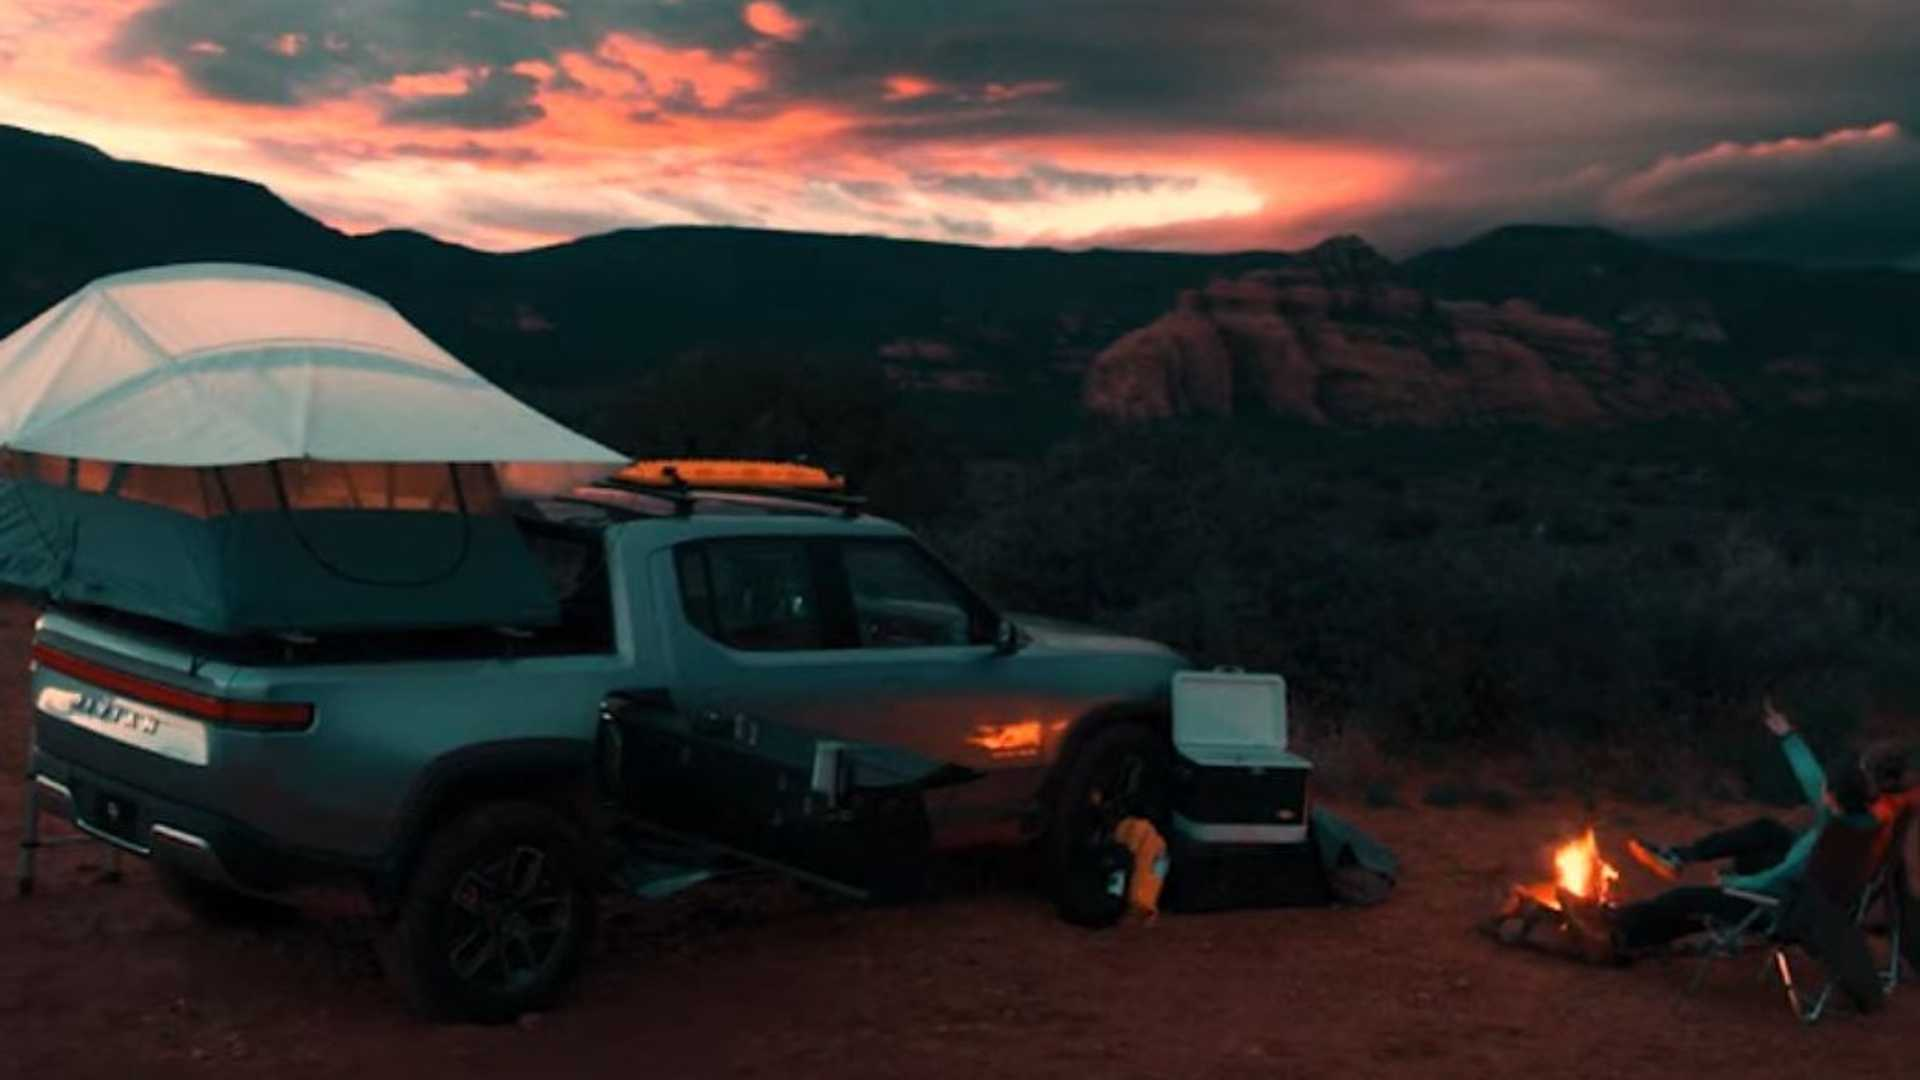 Rivian R1T Electric Truck: Camping Out And Cooking In The Wild